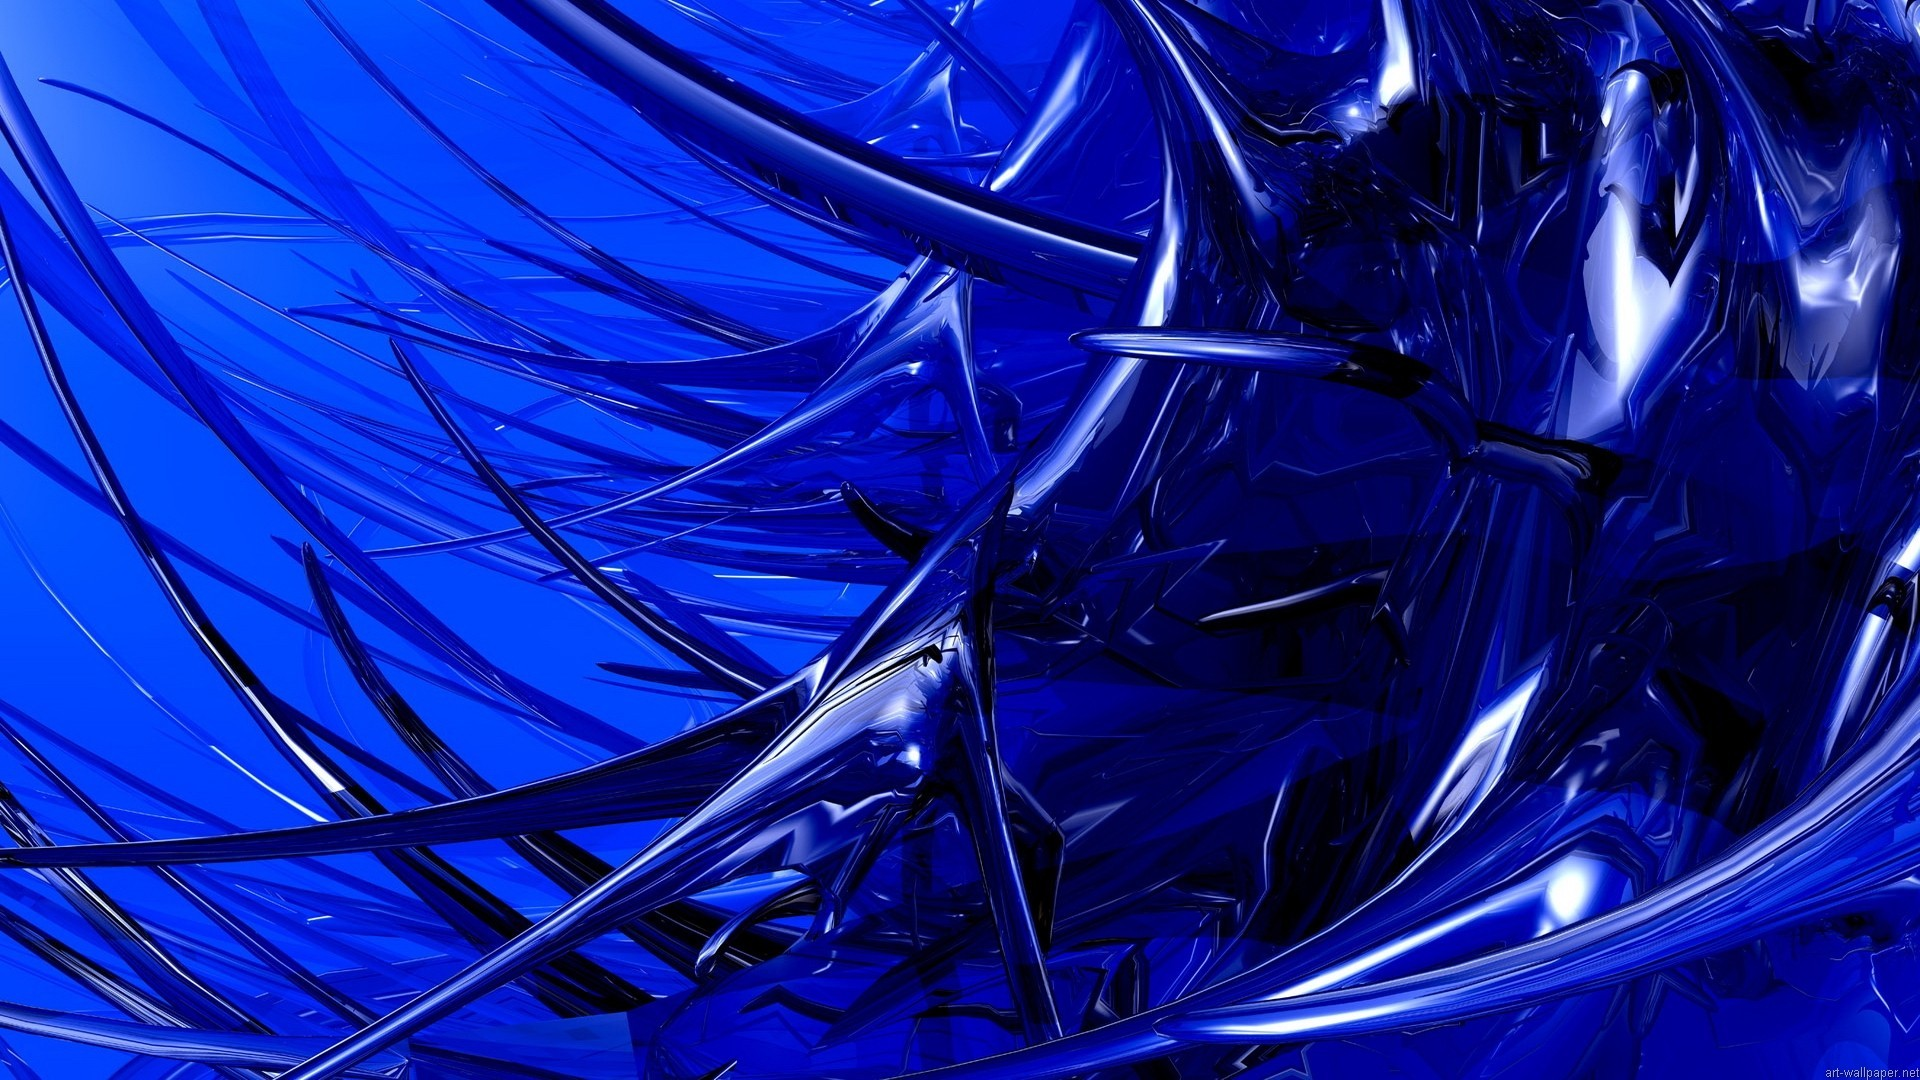 1920x1080 Showing Gallery For Blue Abstract Wallpaper 1080p